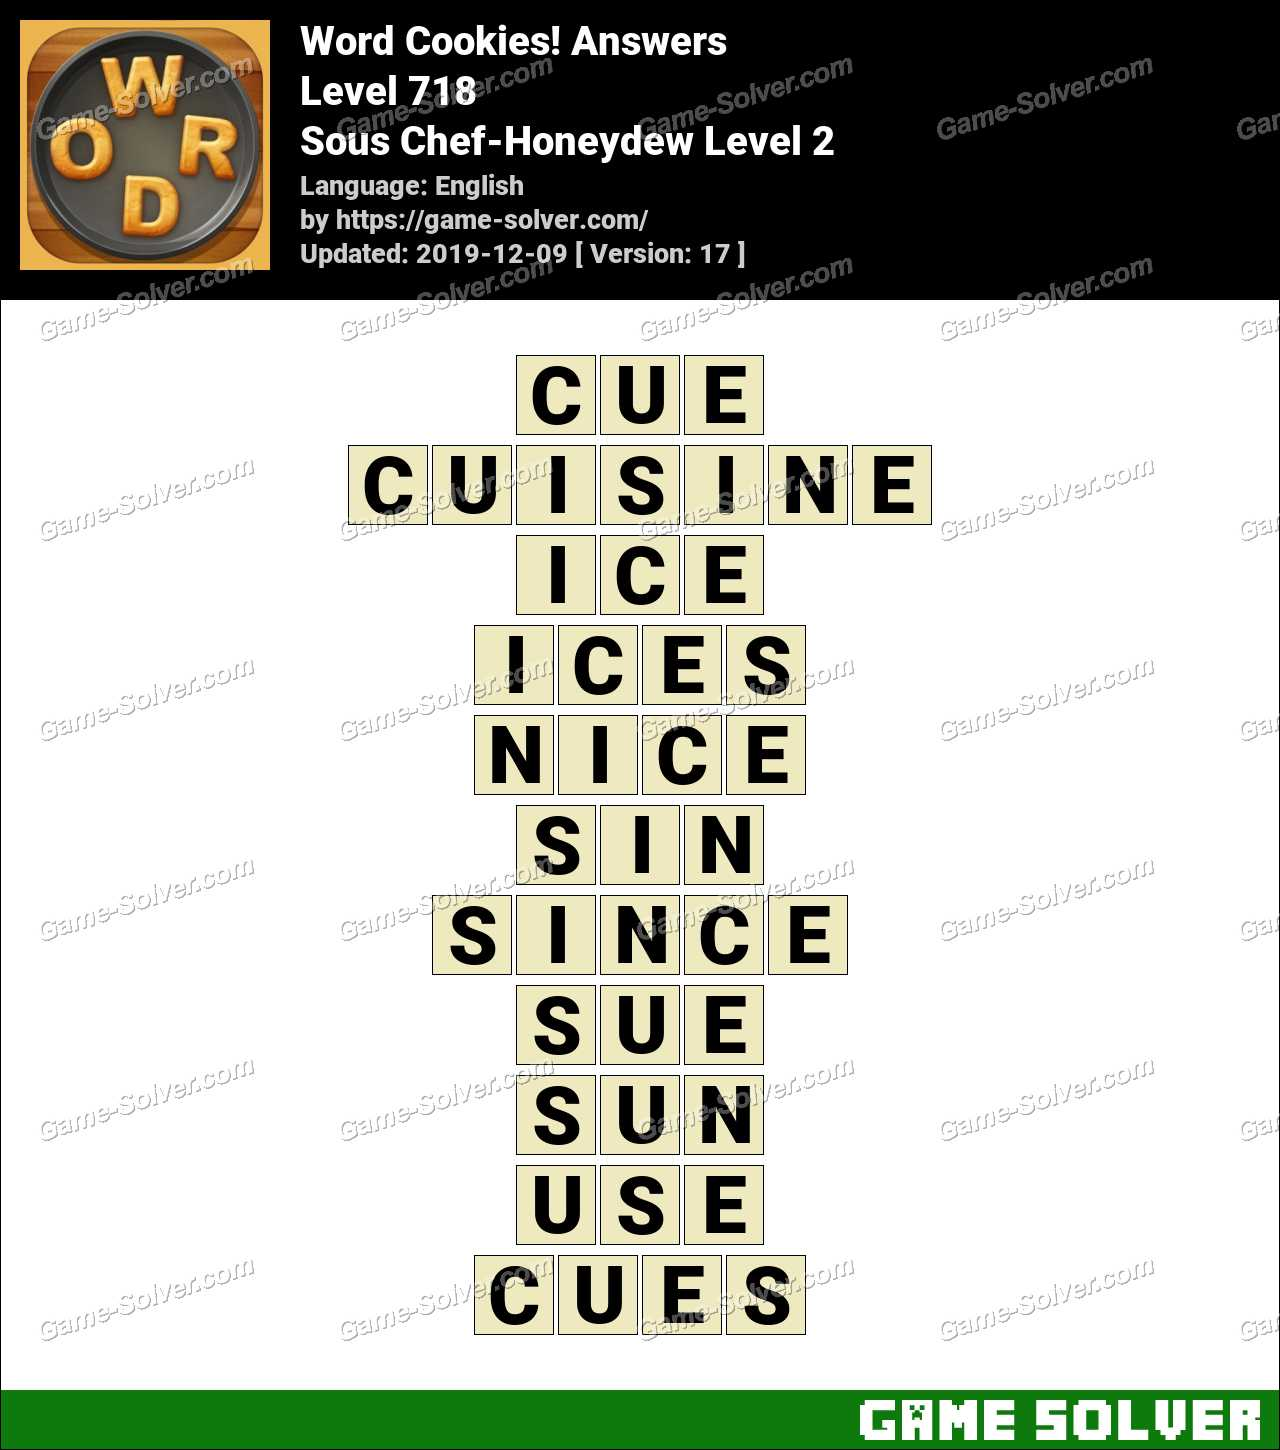 Word Cookies Sous Chef-Honeydew Level 2 Answers